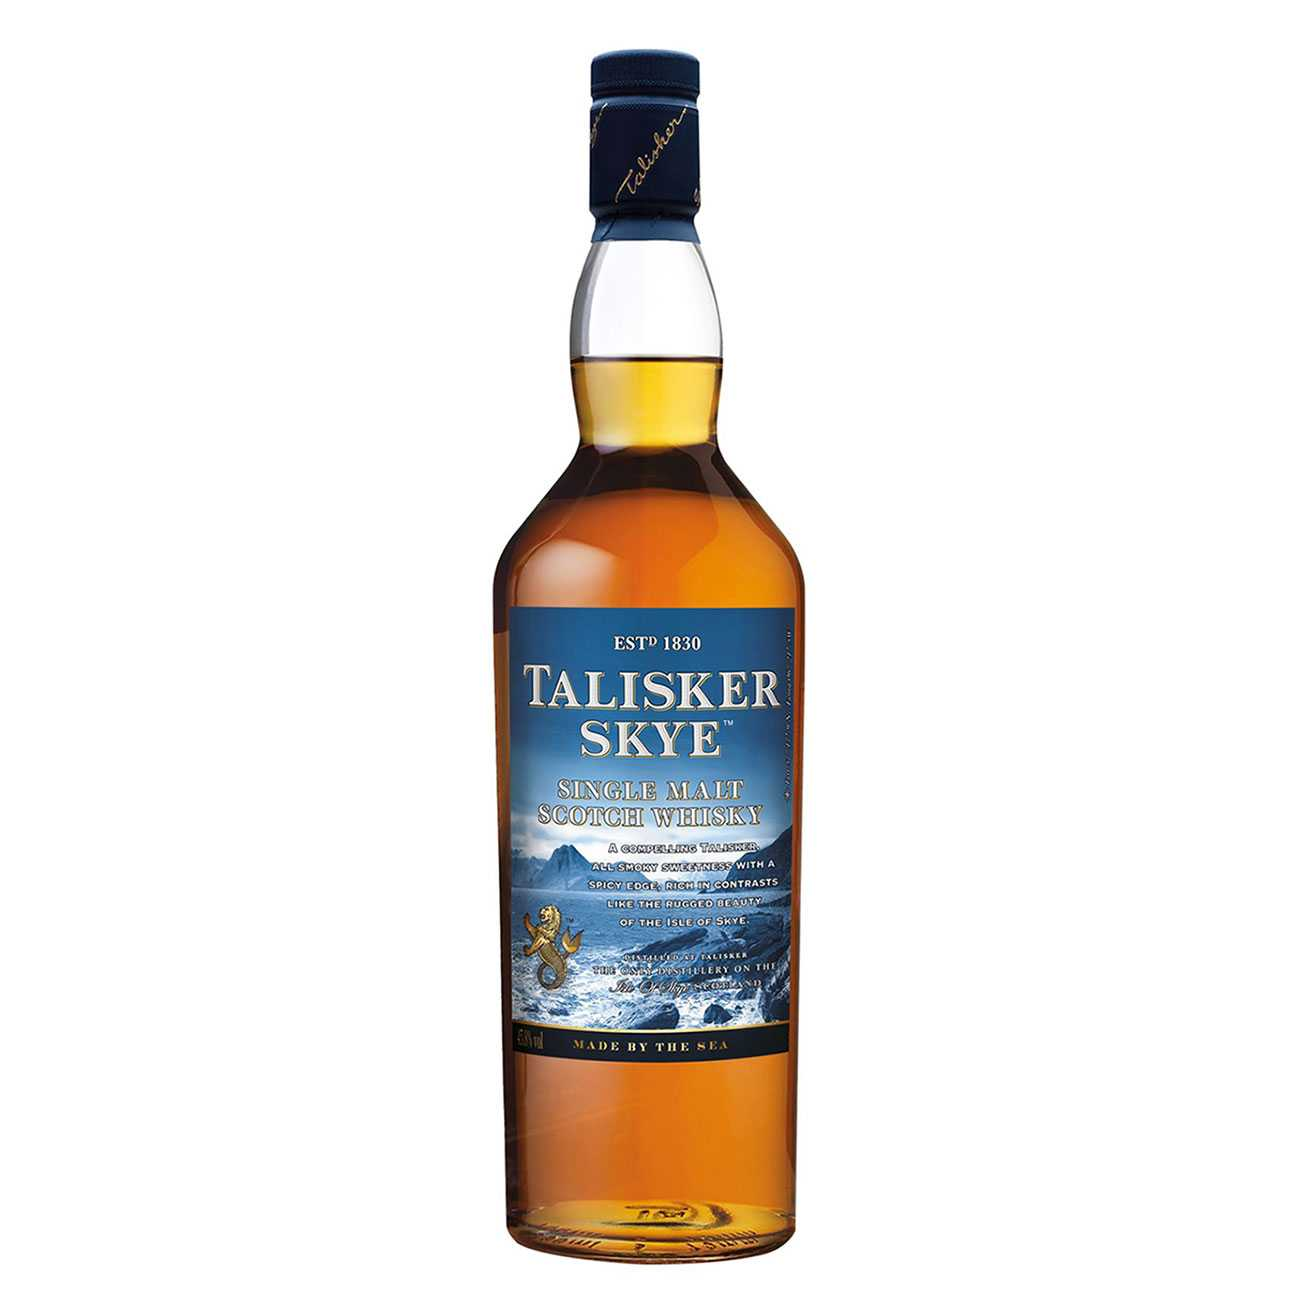 Whisky scotian, SKYE 1000 ML, Talisker